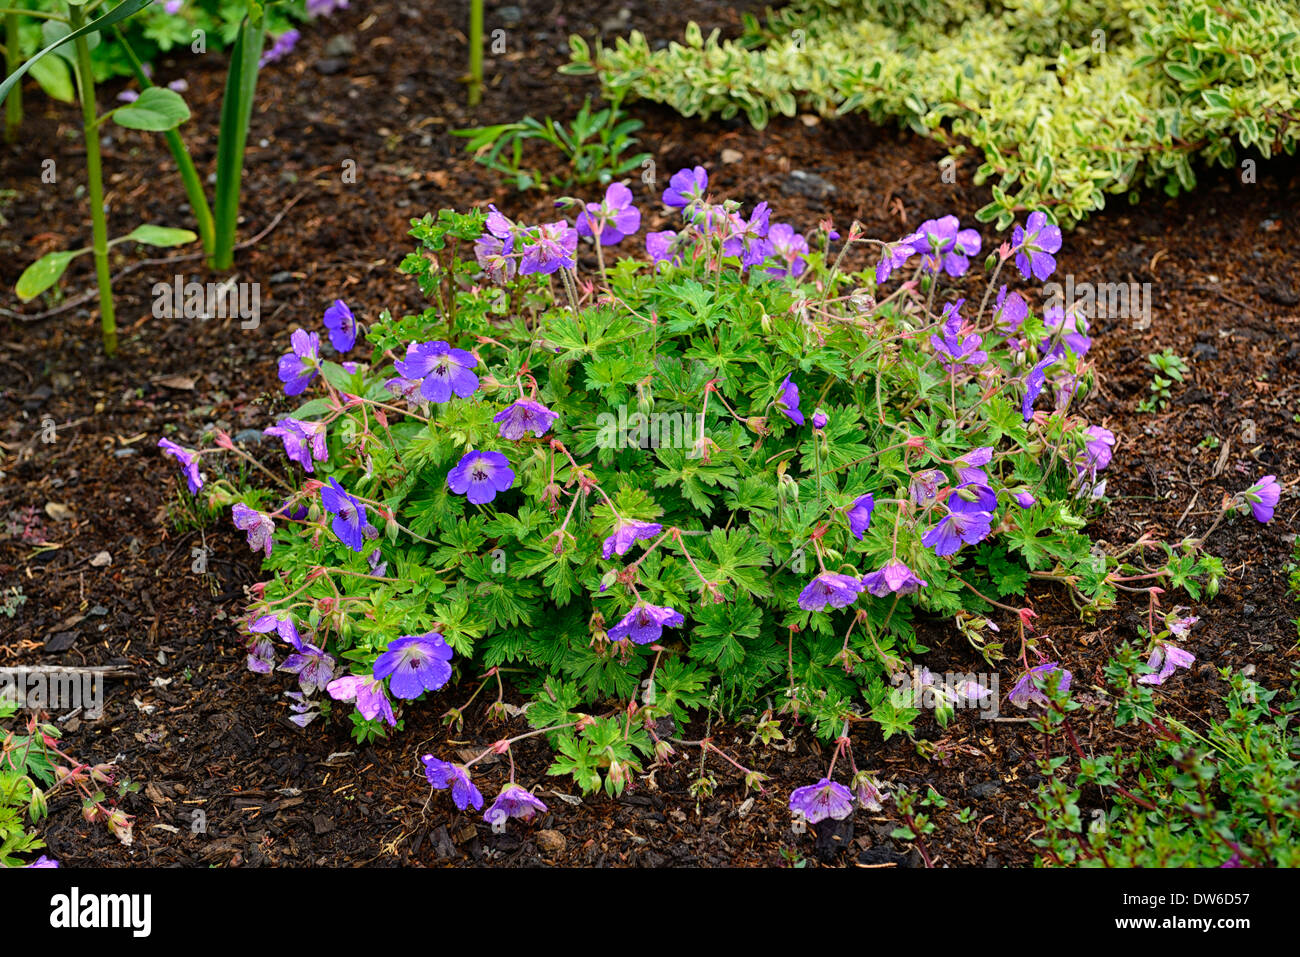 Geranium Rozanne Purple Flowers Flowering Geraniums Perennials Stock